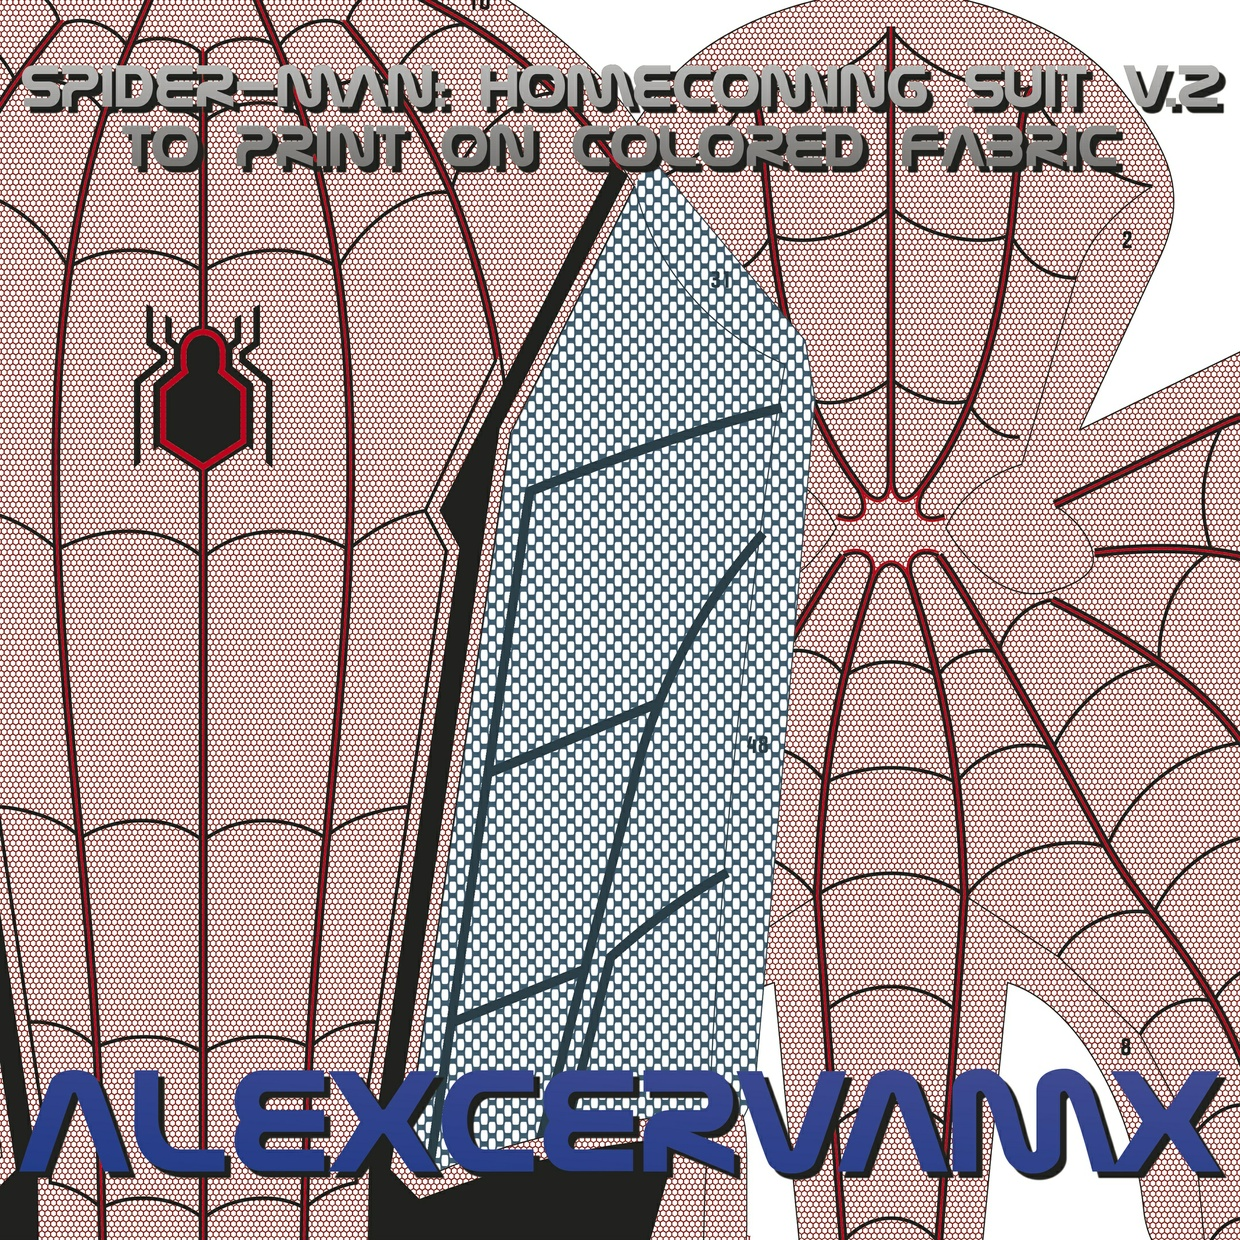 AlexCerva's SM: Homecoming v2 Dye-Sub Pattern To Print On Colored Fabric